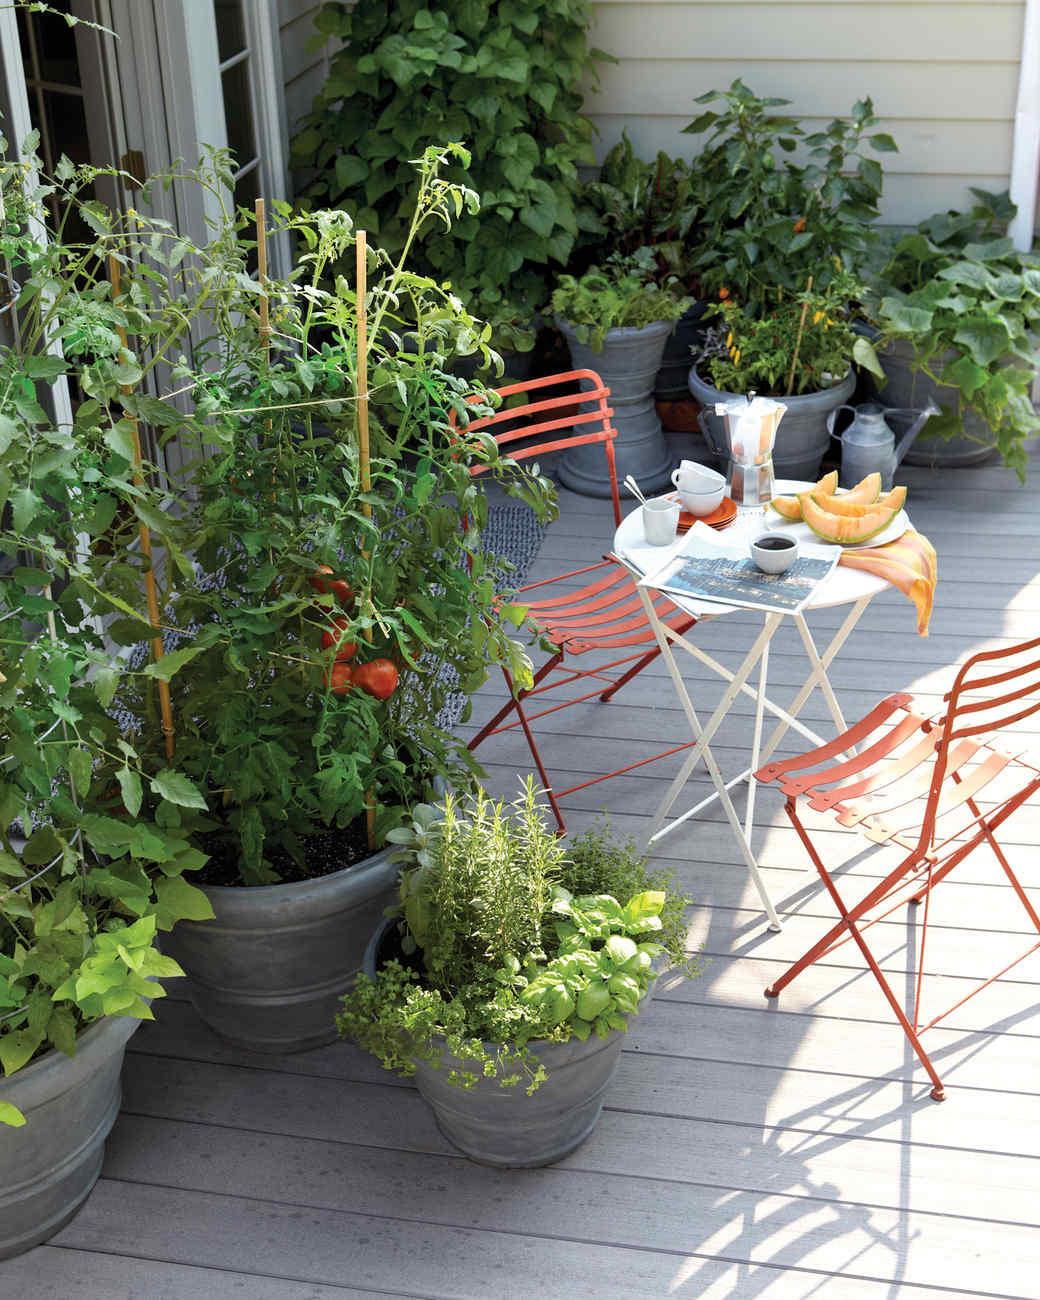 small-space garden ideas | martha stewart - Patio Gardening Ideas